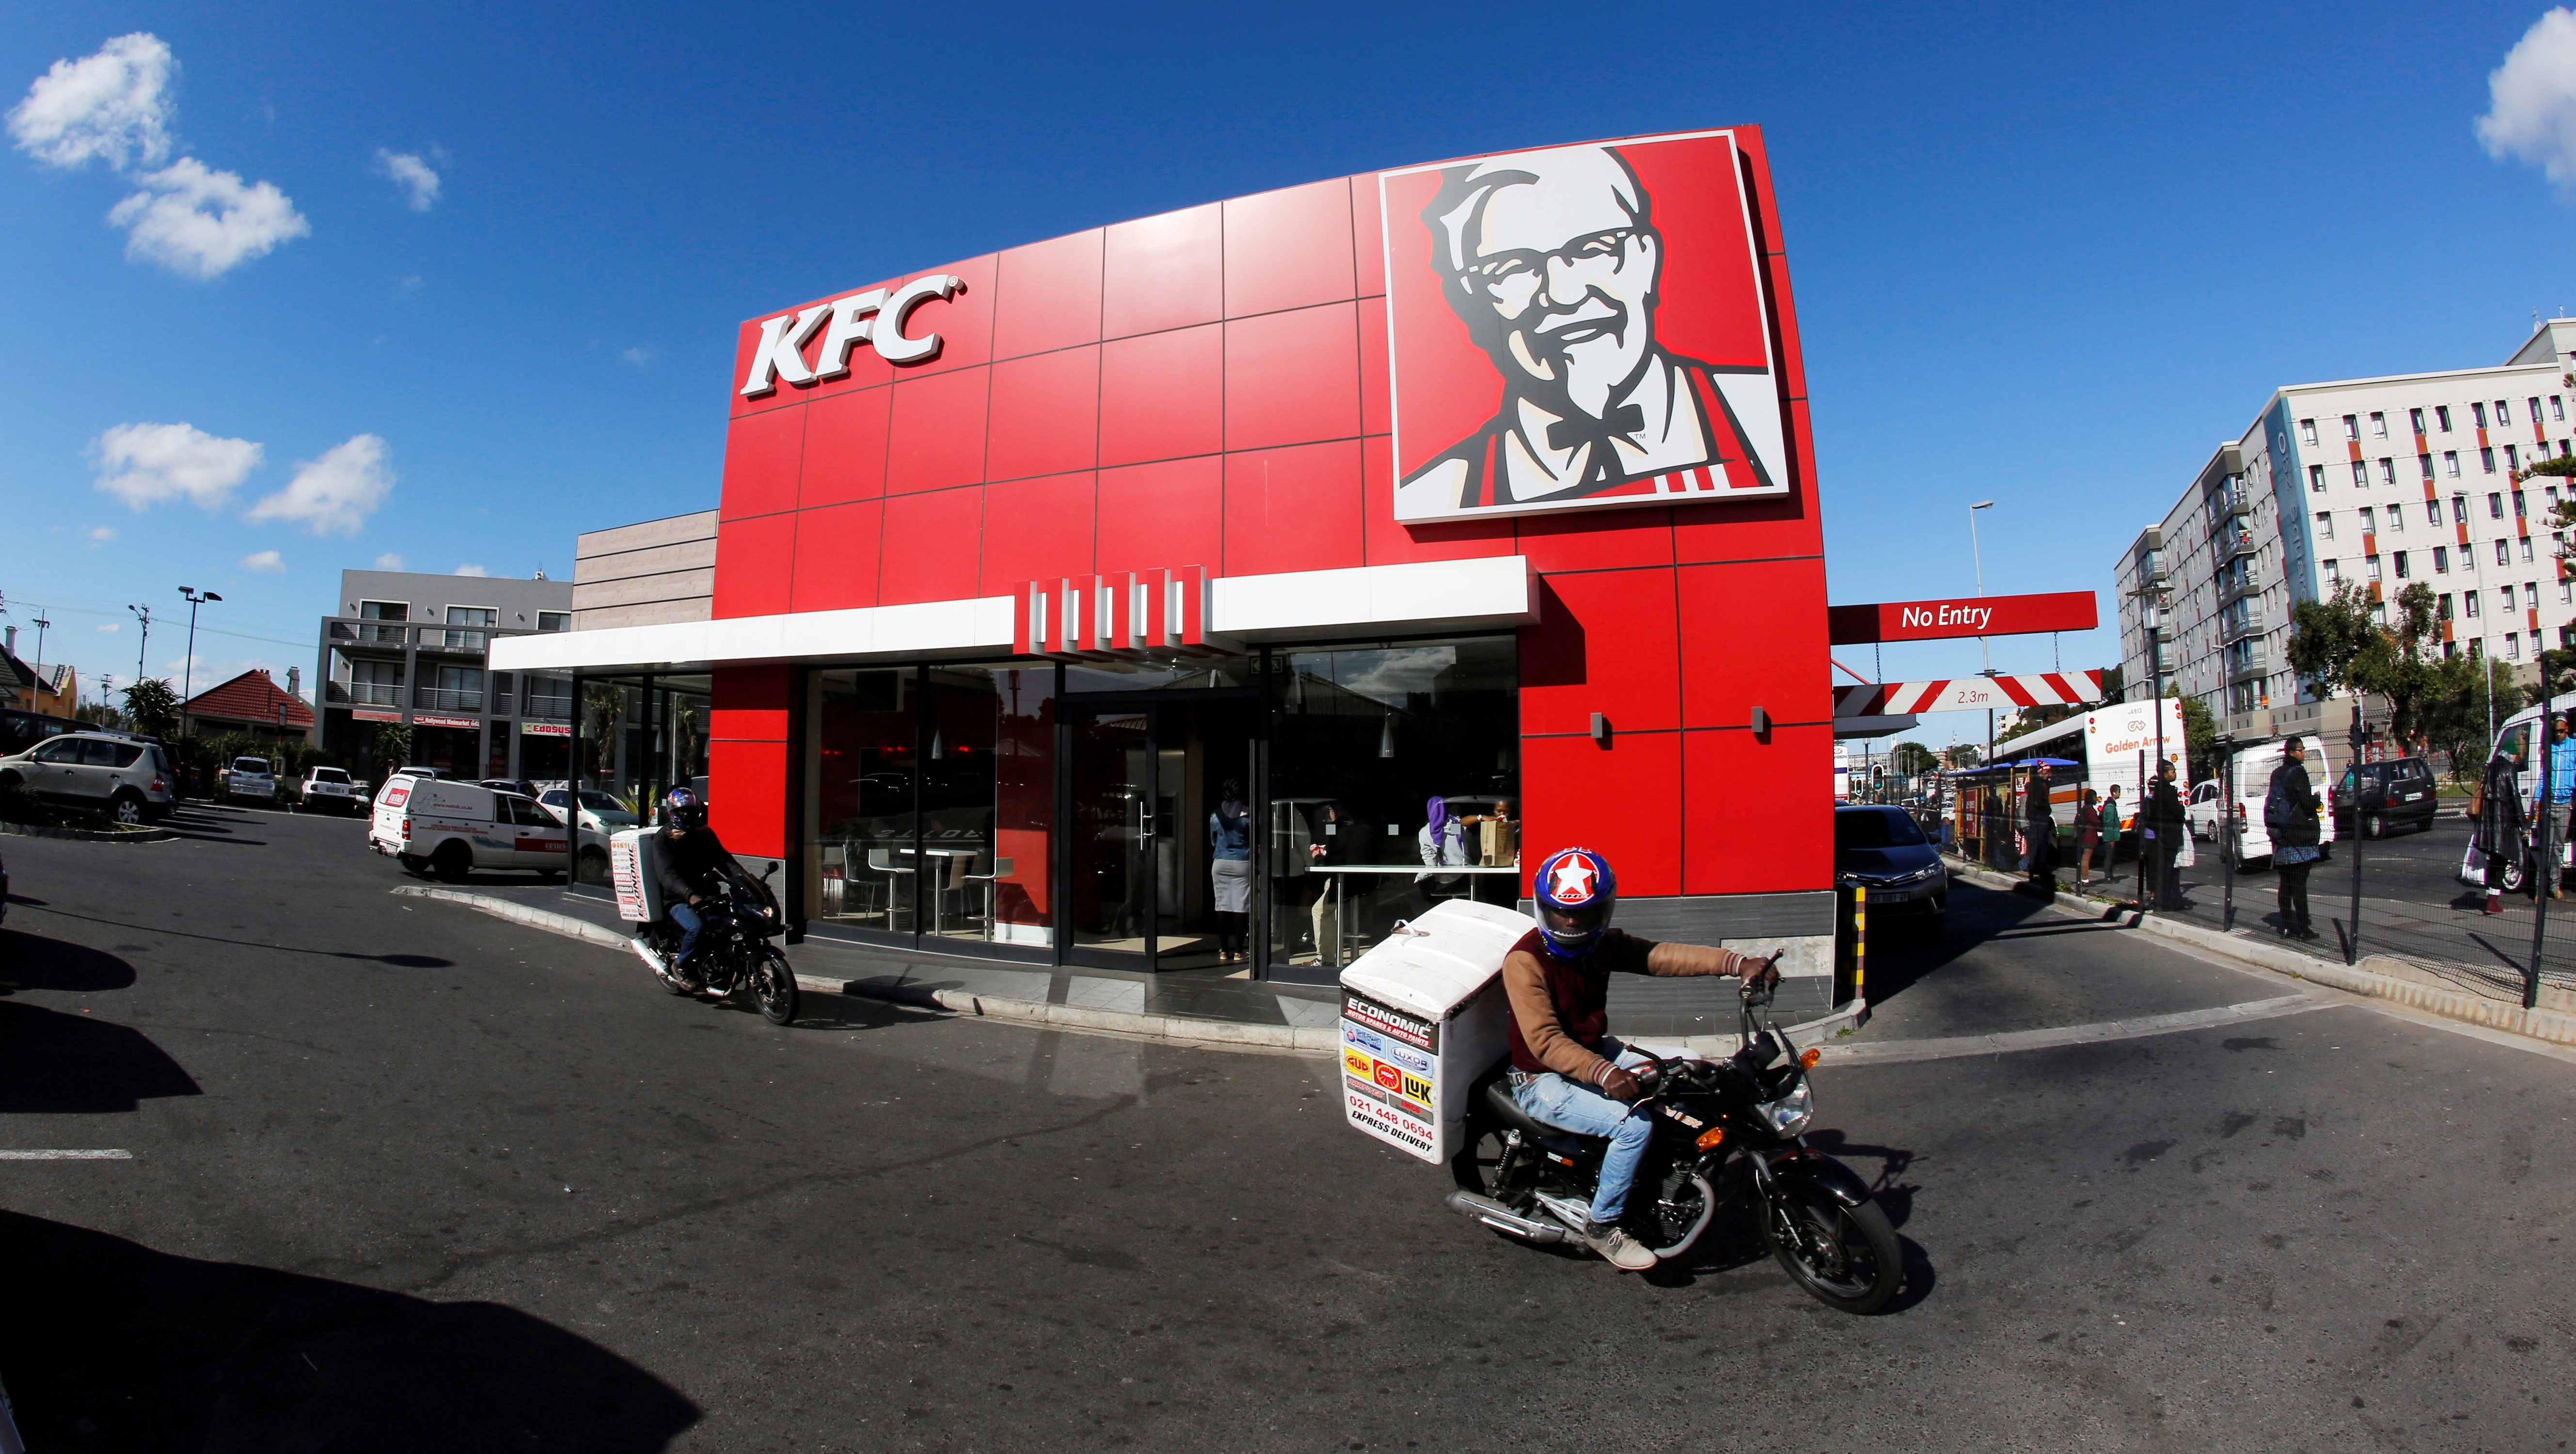 A branch of fast food outlet Kentucky Fried Chicken (KFC) is seen in Cape Town, South Africa, June 3, 2016.